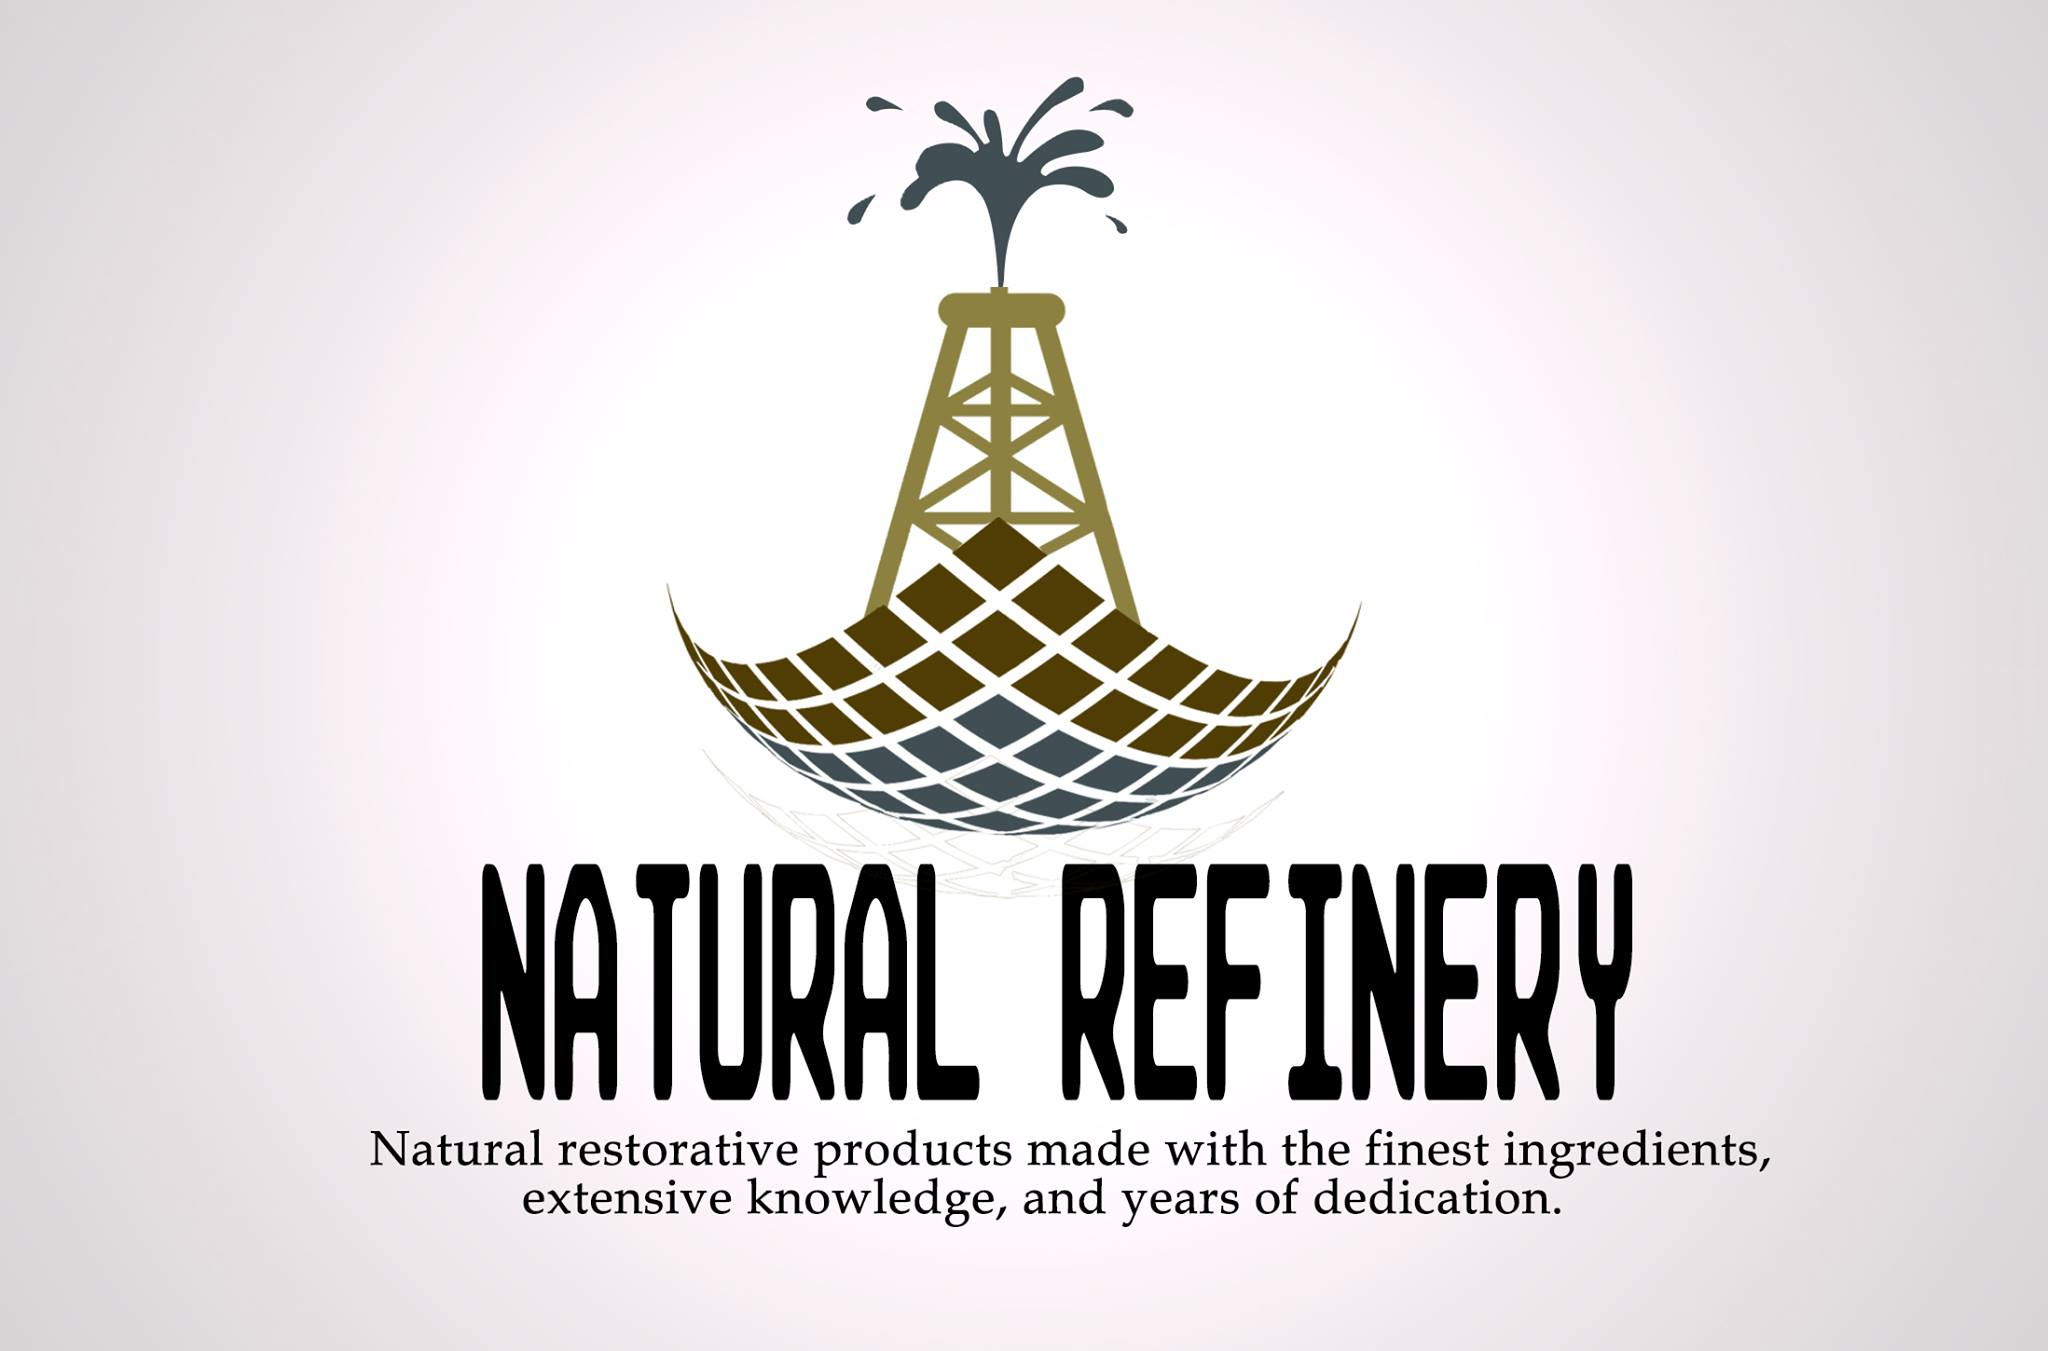 Natural Refinery